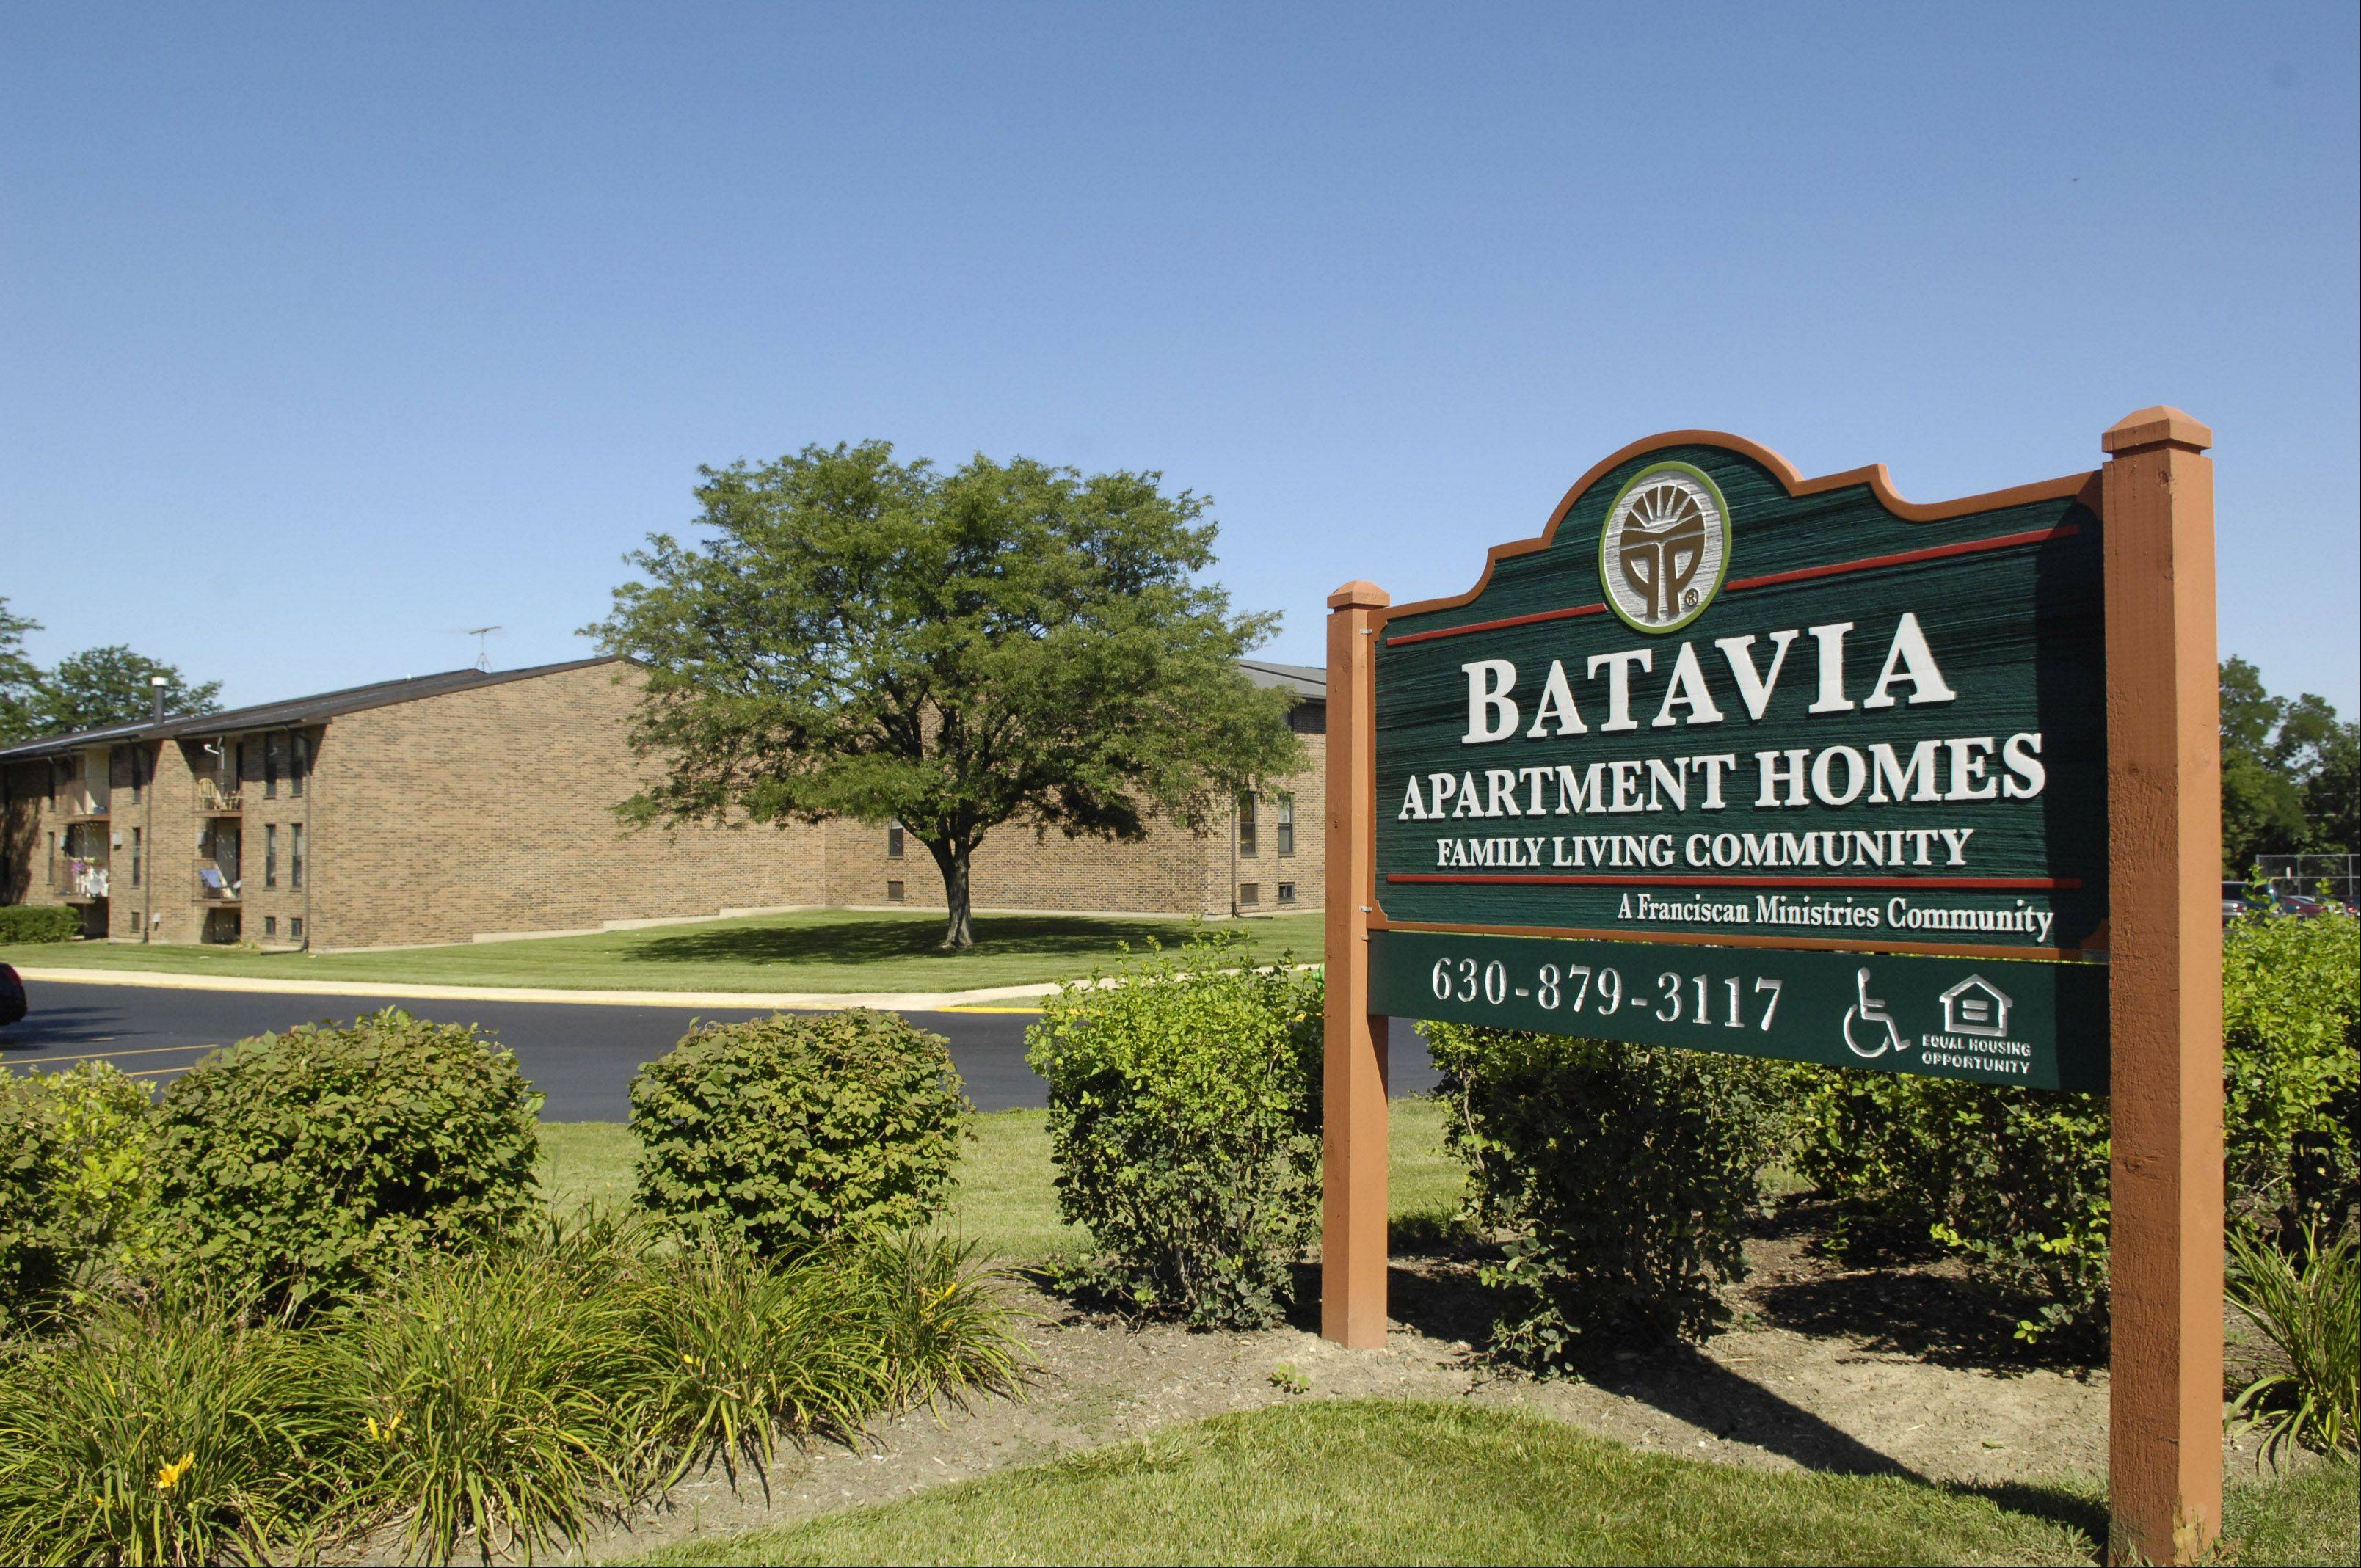 Owners of large rental housing complexes, such as the Batavia Apartments, will have to get licenses from the city, under a crime-free housing law the city council adopted this week.